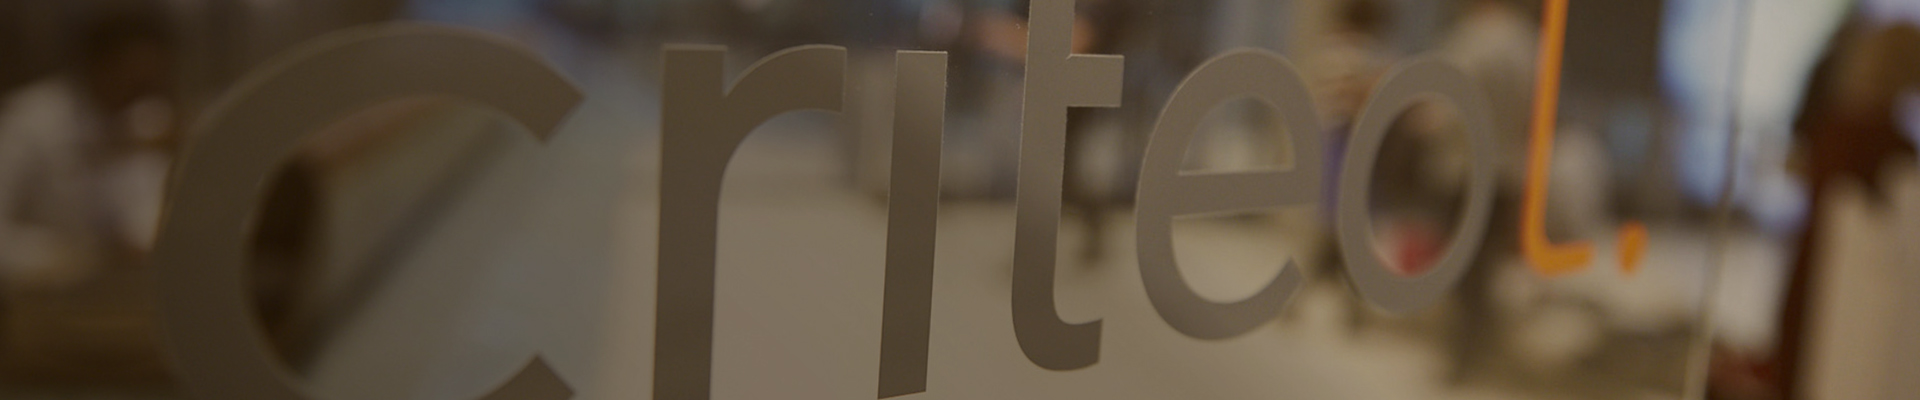 Criteo glass sign